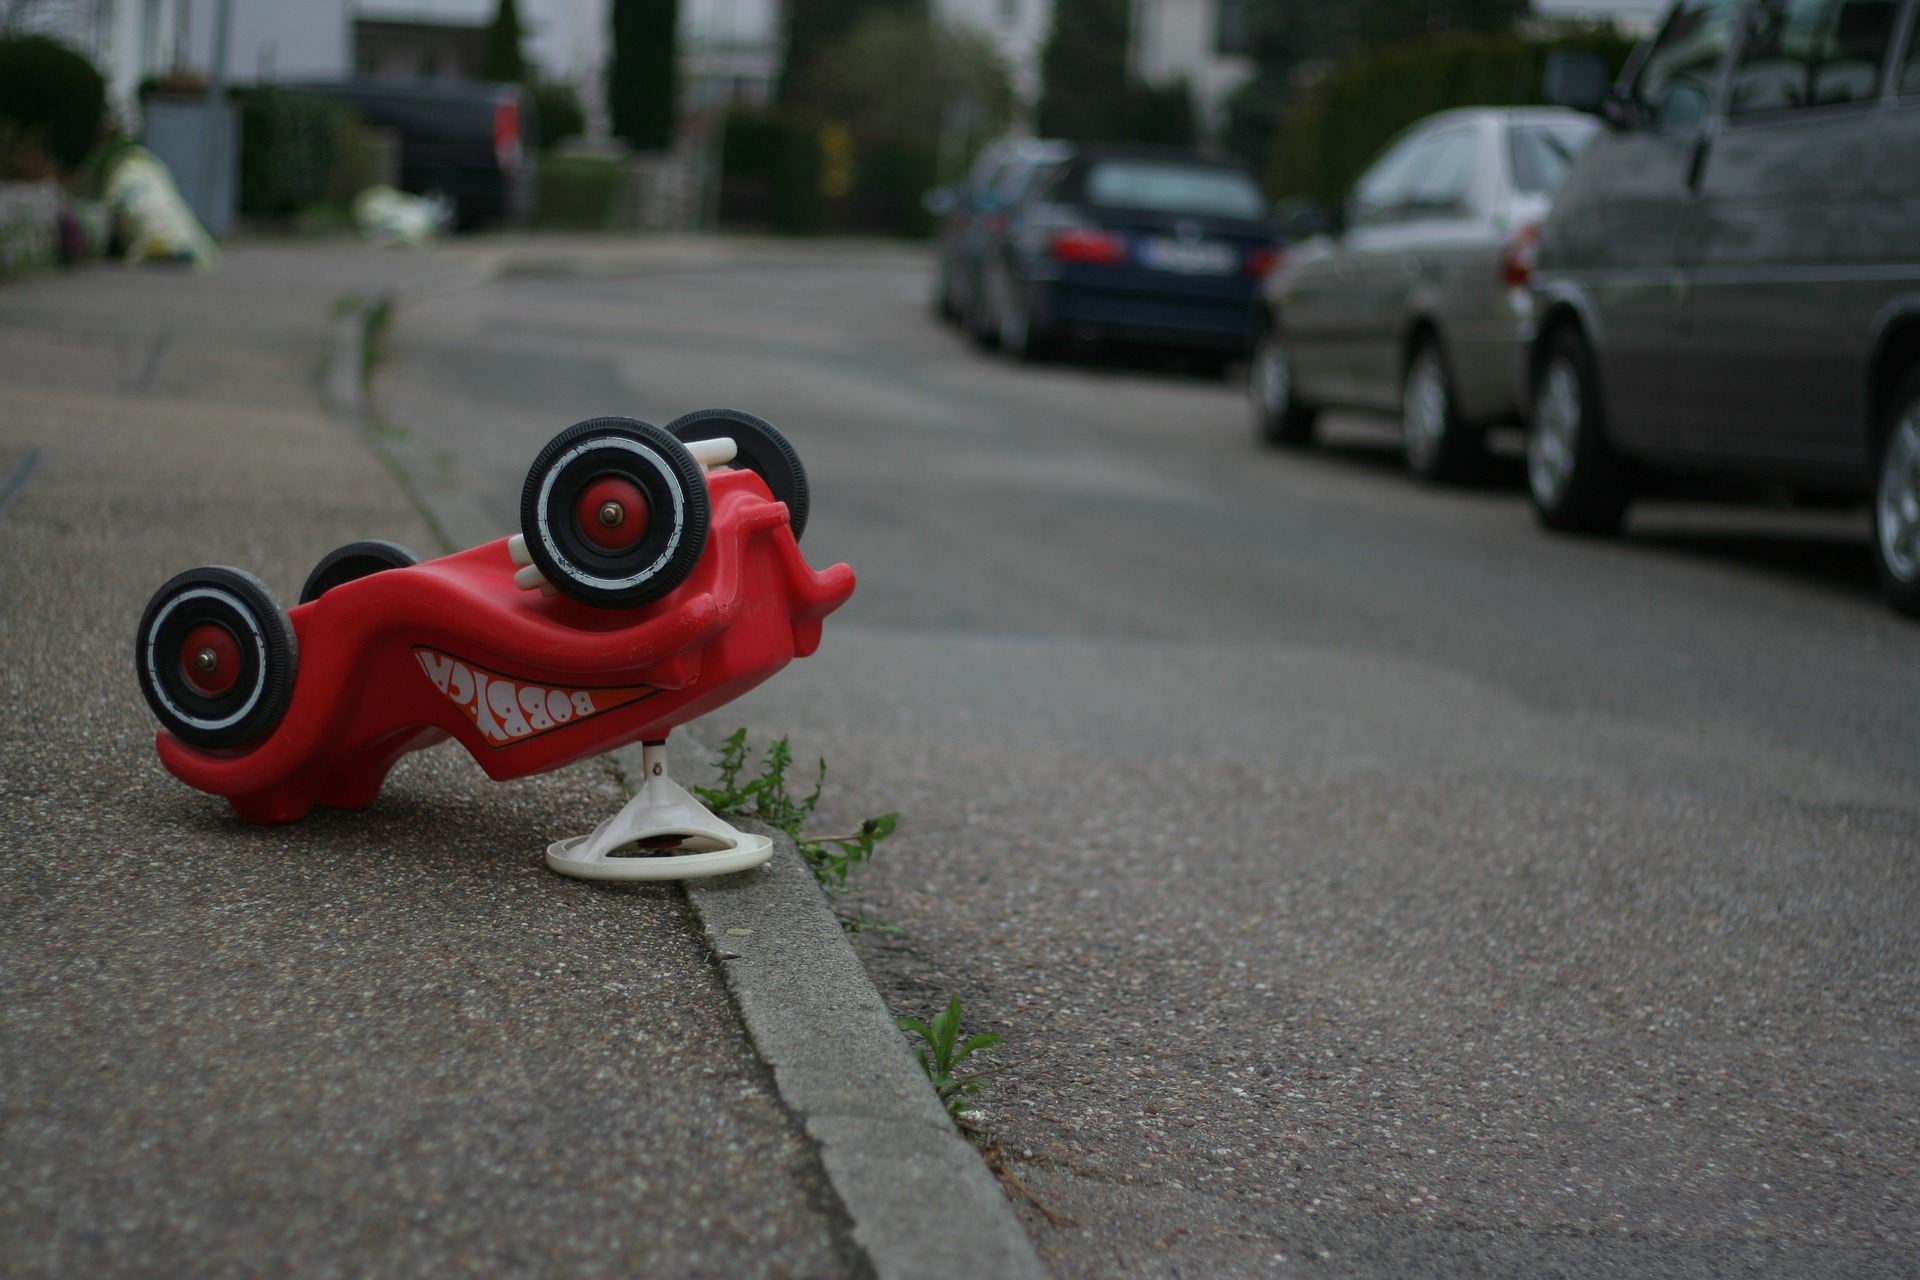 red toy truck upside down on street